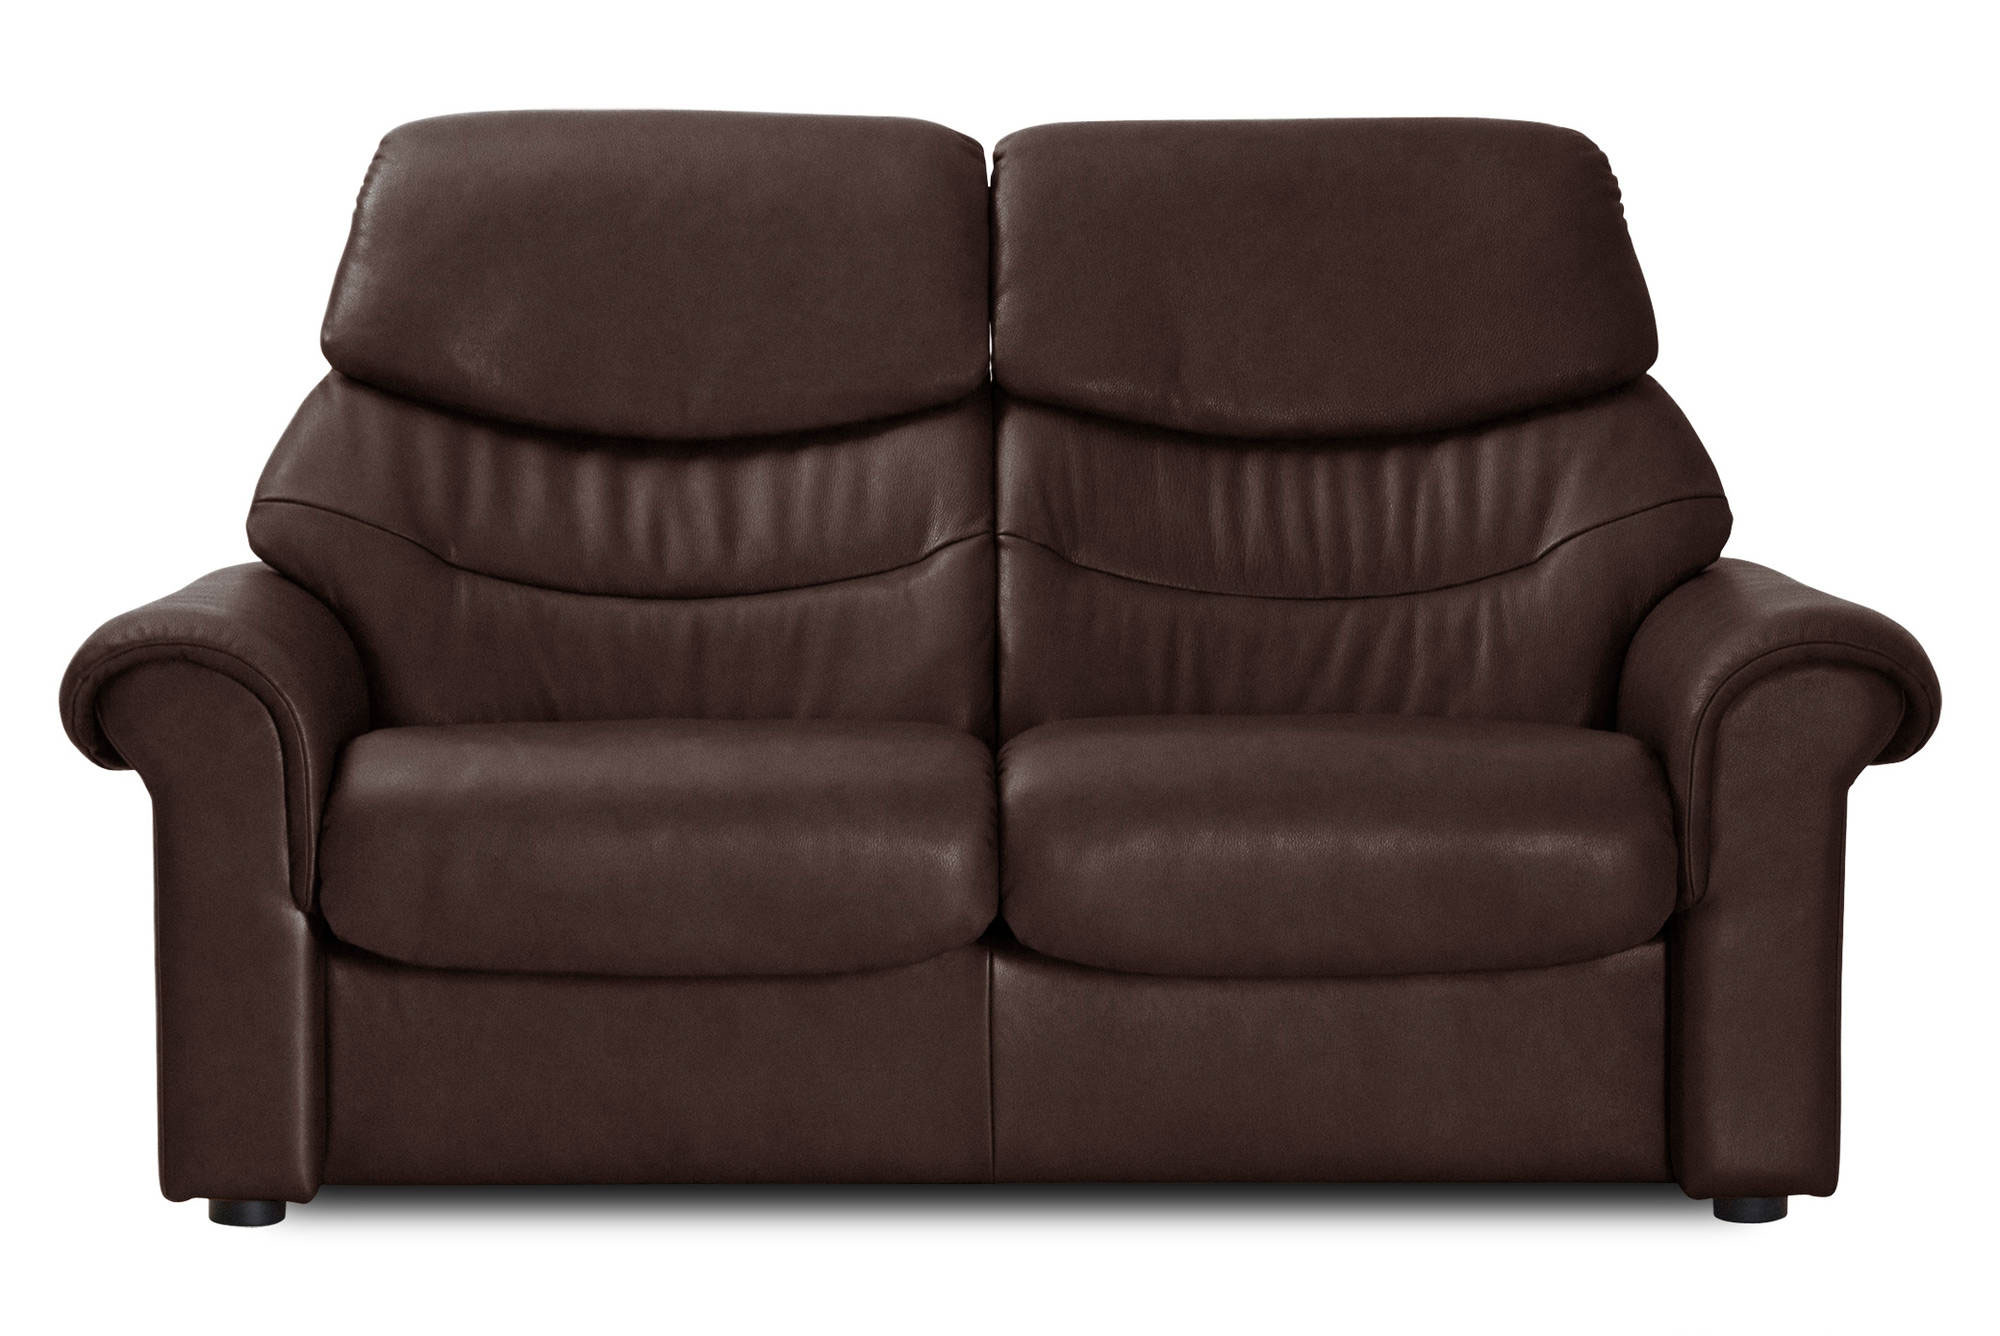 Sofas Amp Loveseats Upholstered Sofas Leather Sofas Amp Loveseats High Quality Living Room